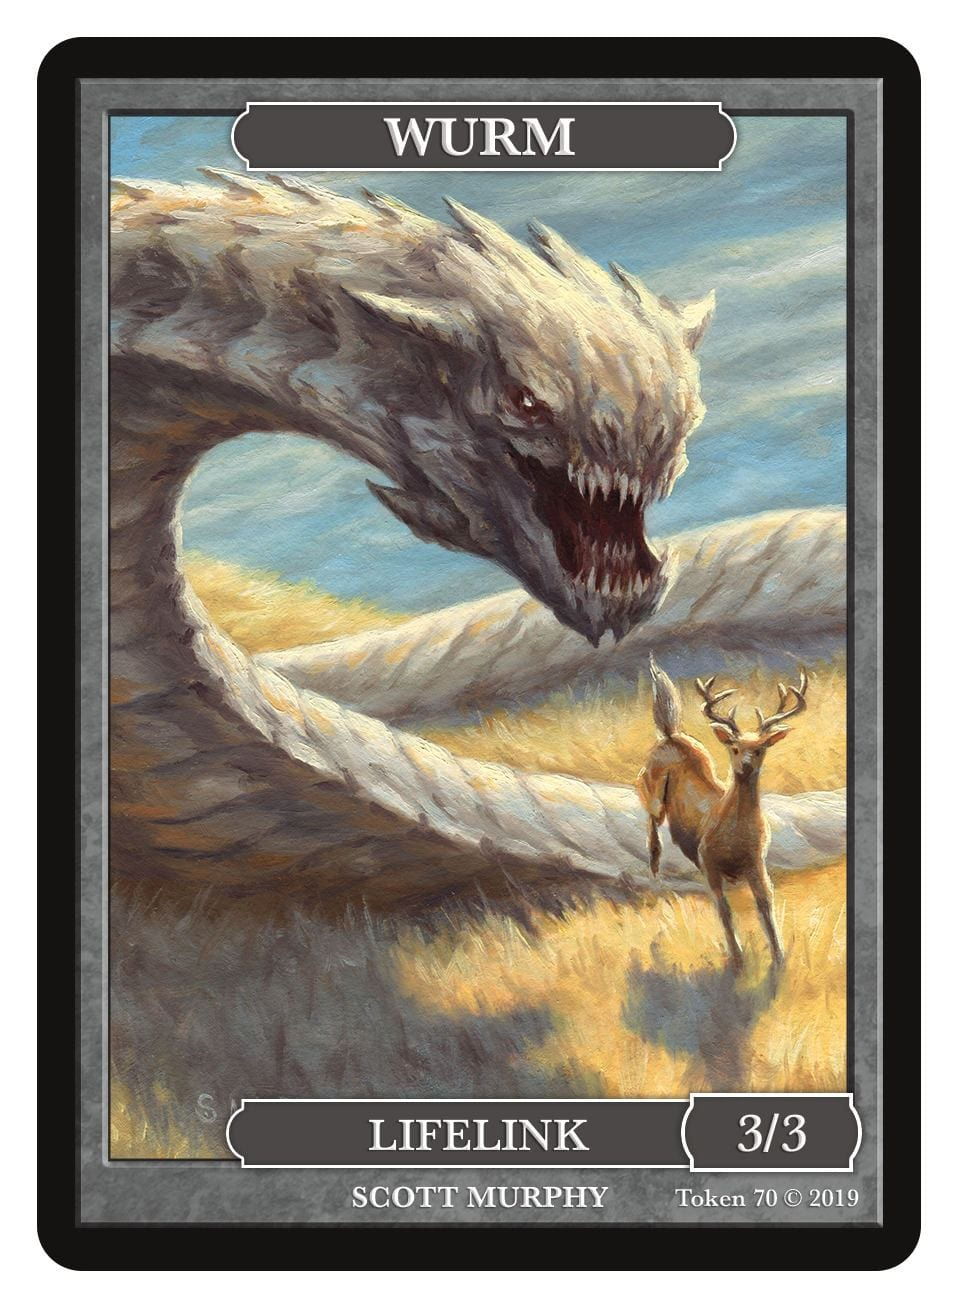 Wurm Token (3/3 - Lifelink) by Scott Murphy - Token - Original Magic Art - Accessories for Magic the Gathering and other card games